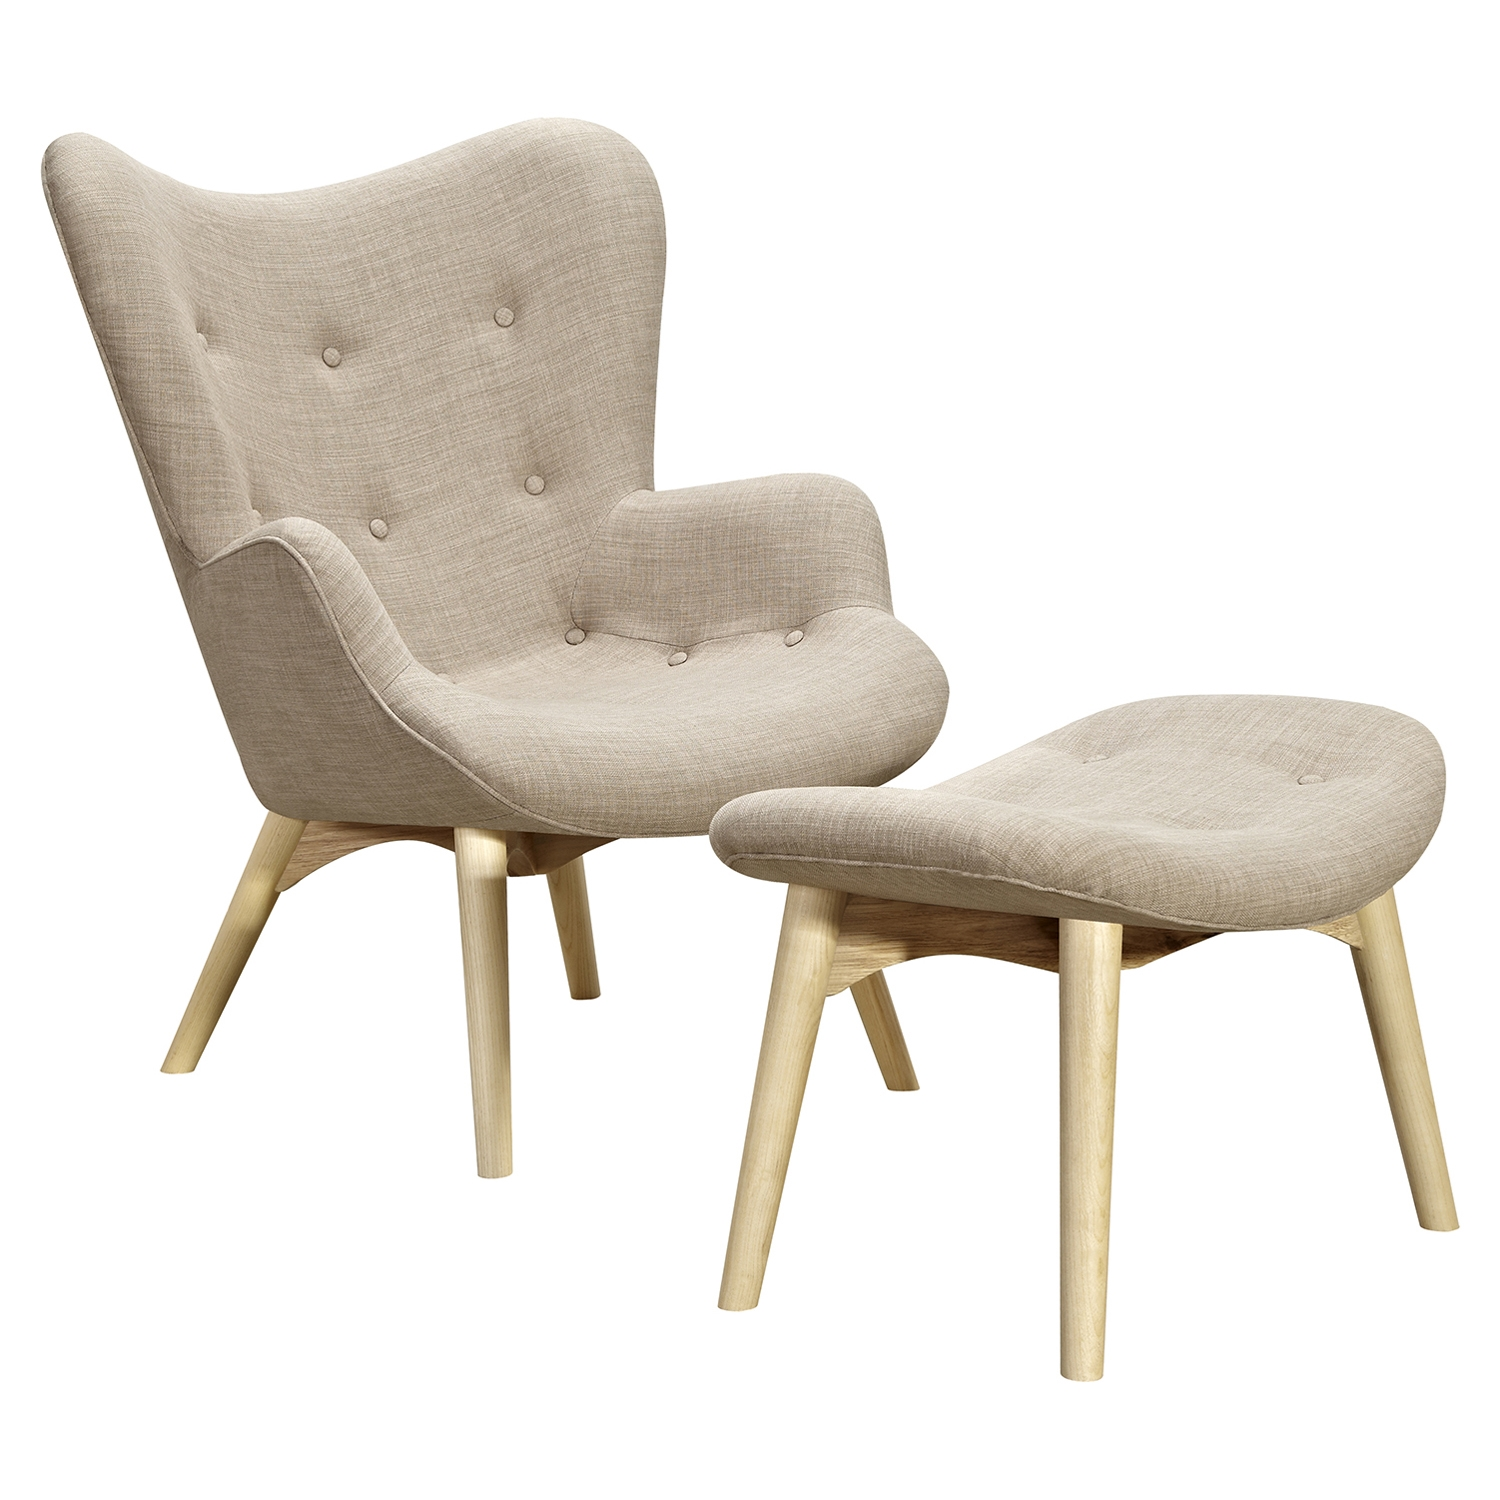 Aiden Button Tufted Upholstery Chair - Oatmeal Gray - NYEK-445559